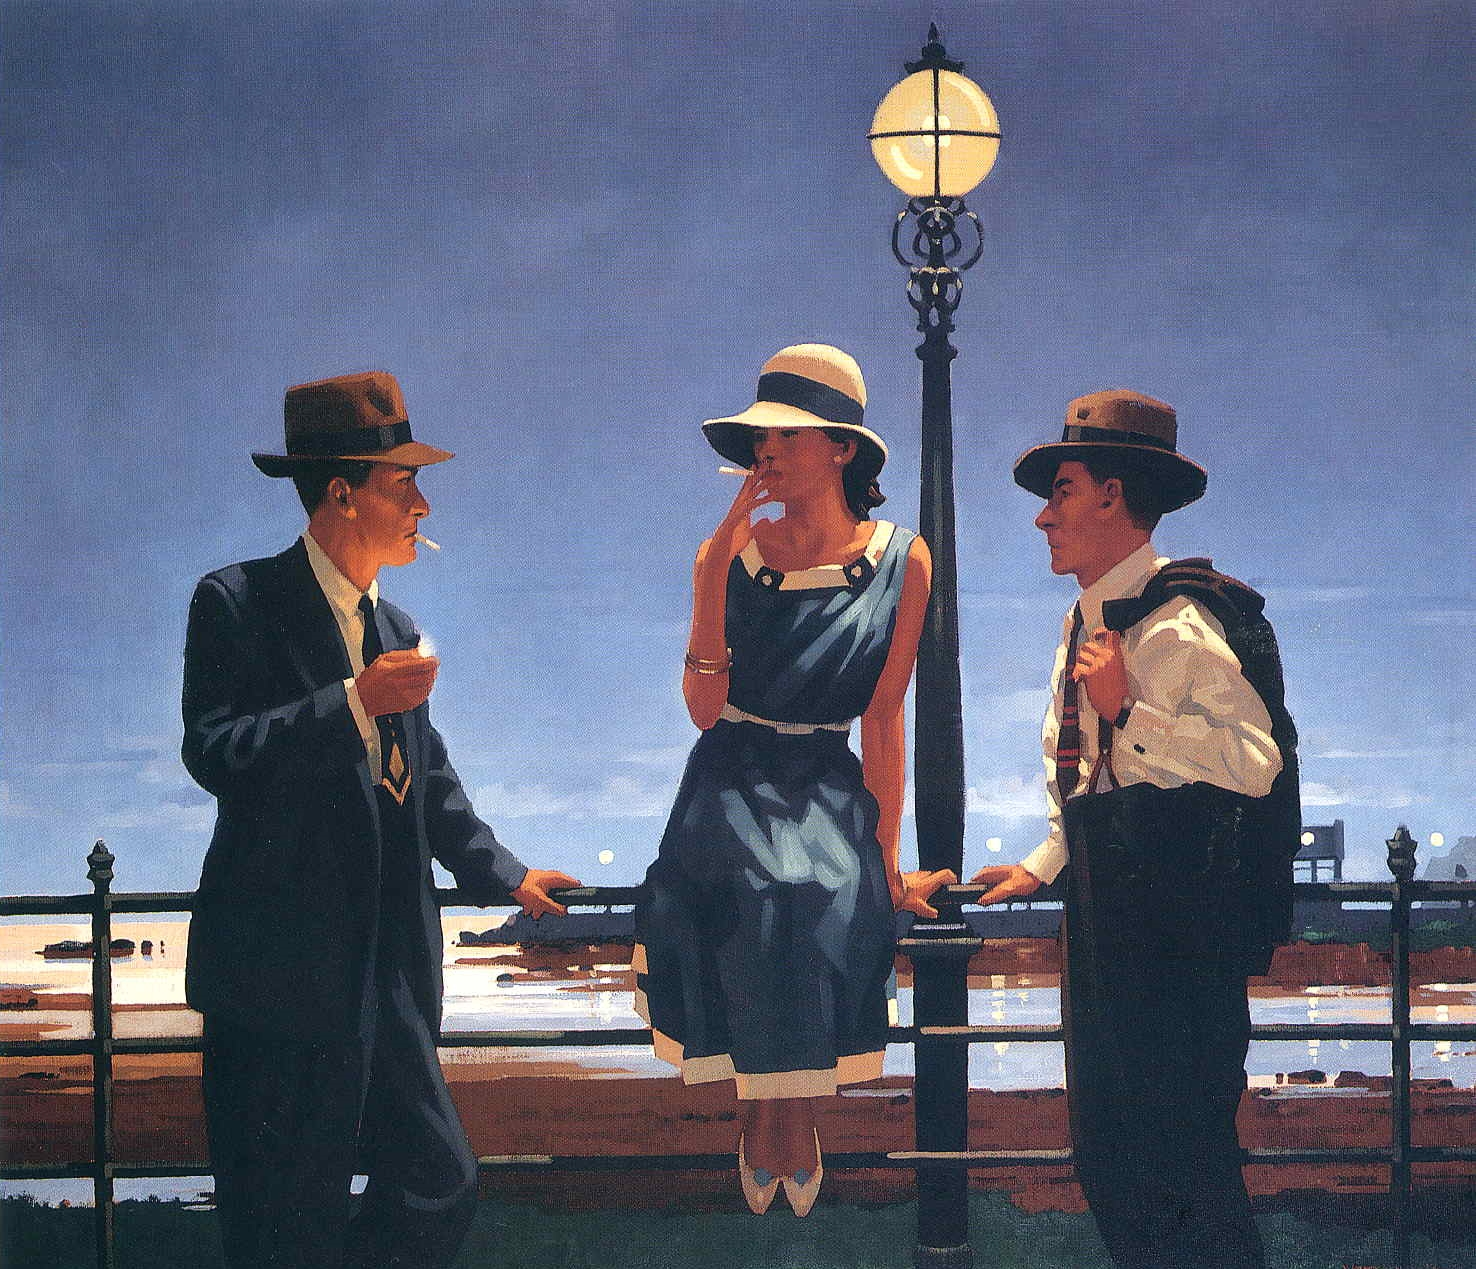 Jack Vettriano could have done scene setting in Napier